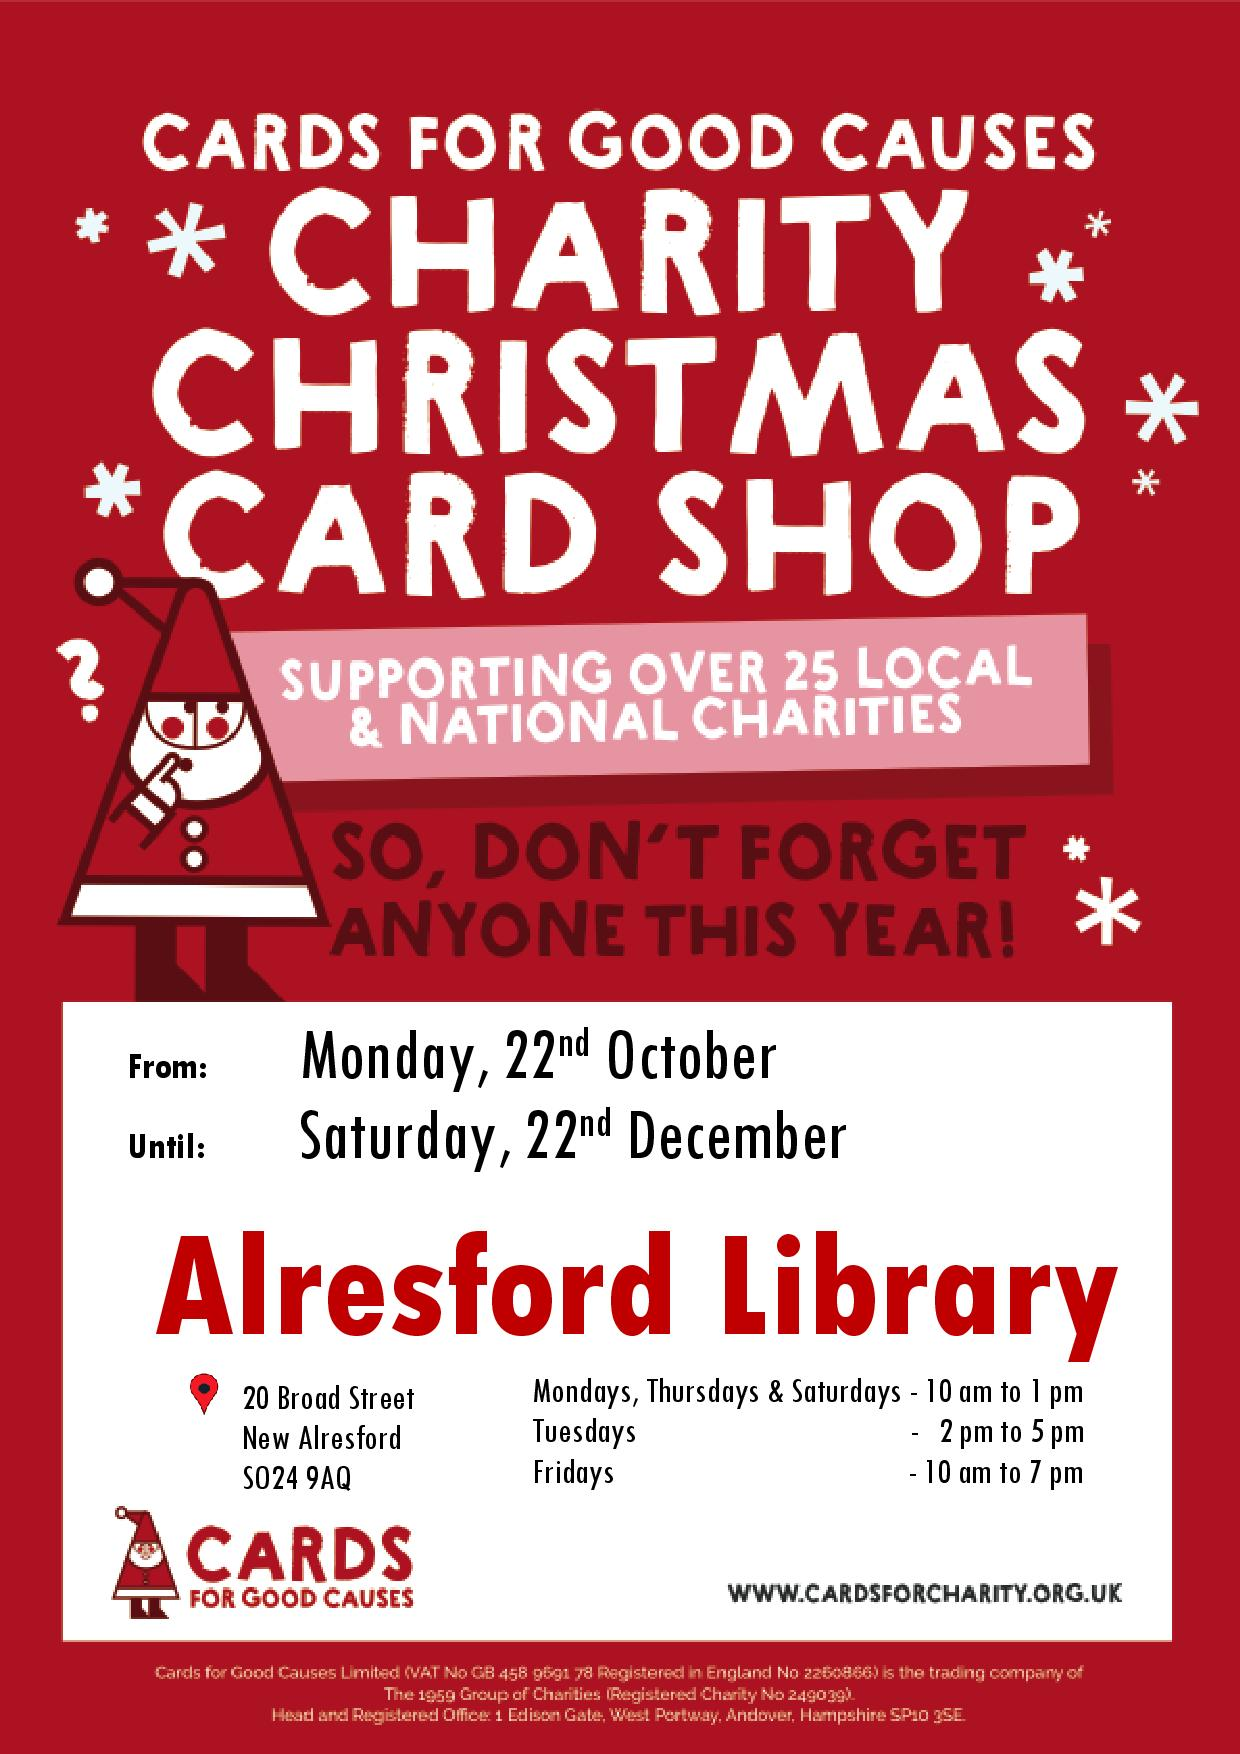 Charity Christmas Card Pop-Up in Alresford Library